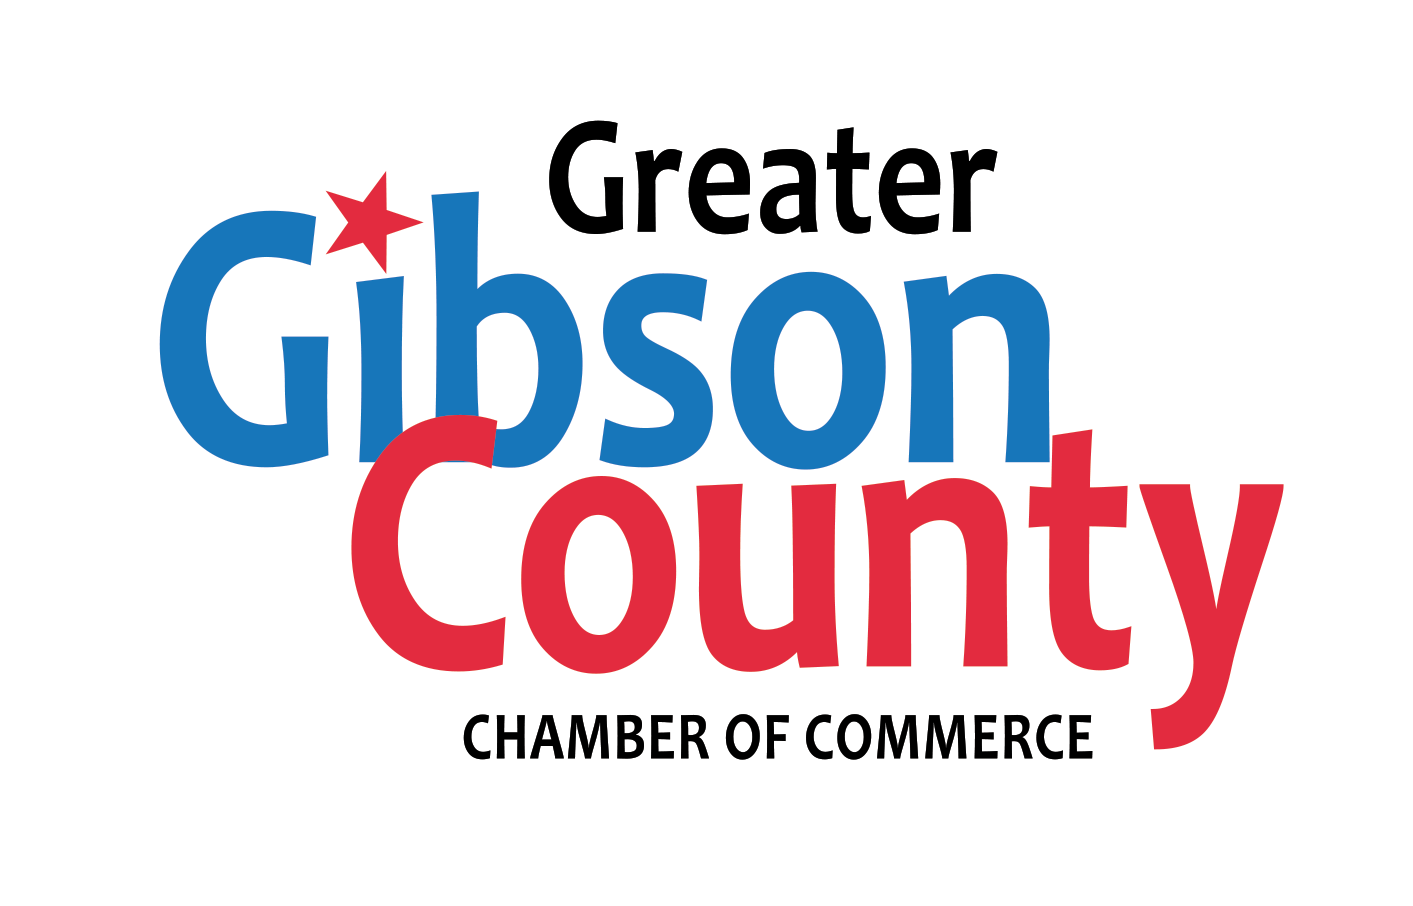 Transportation Greater Gibson County Chamber Tennessee